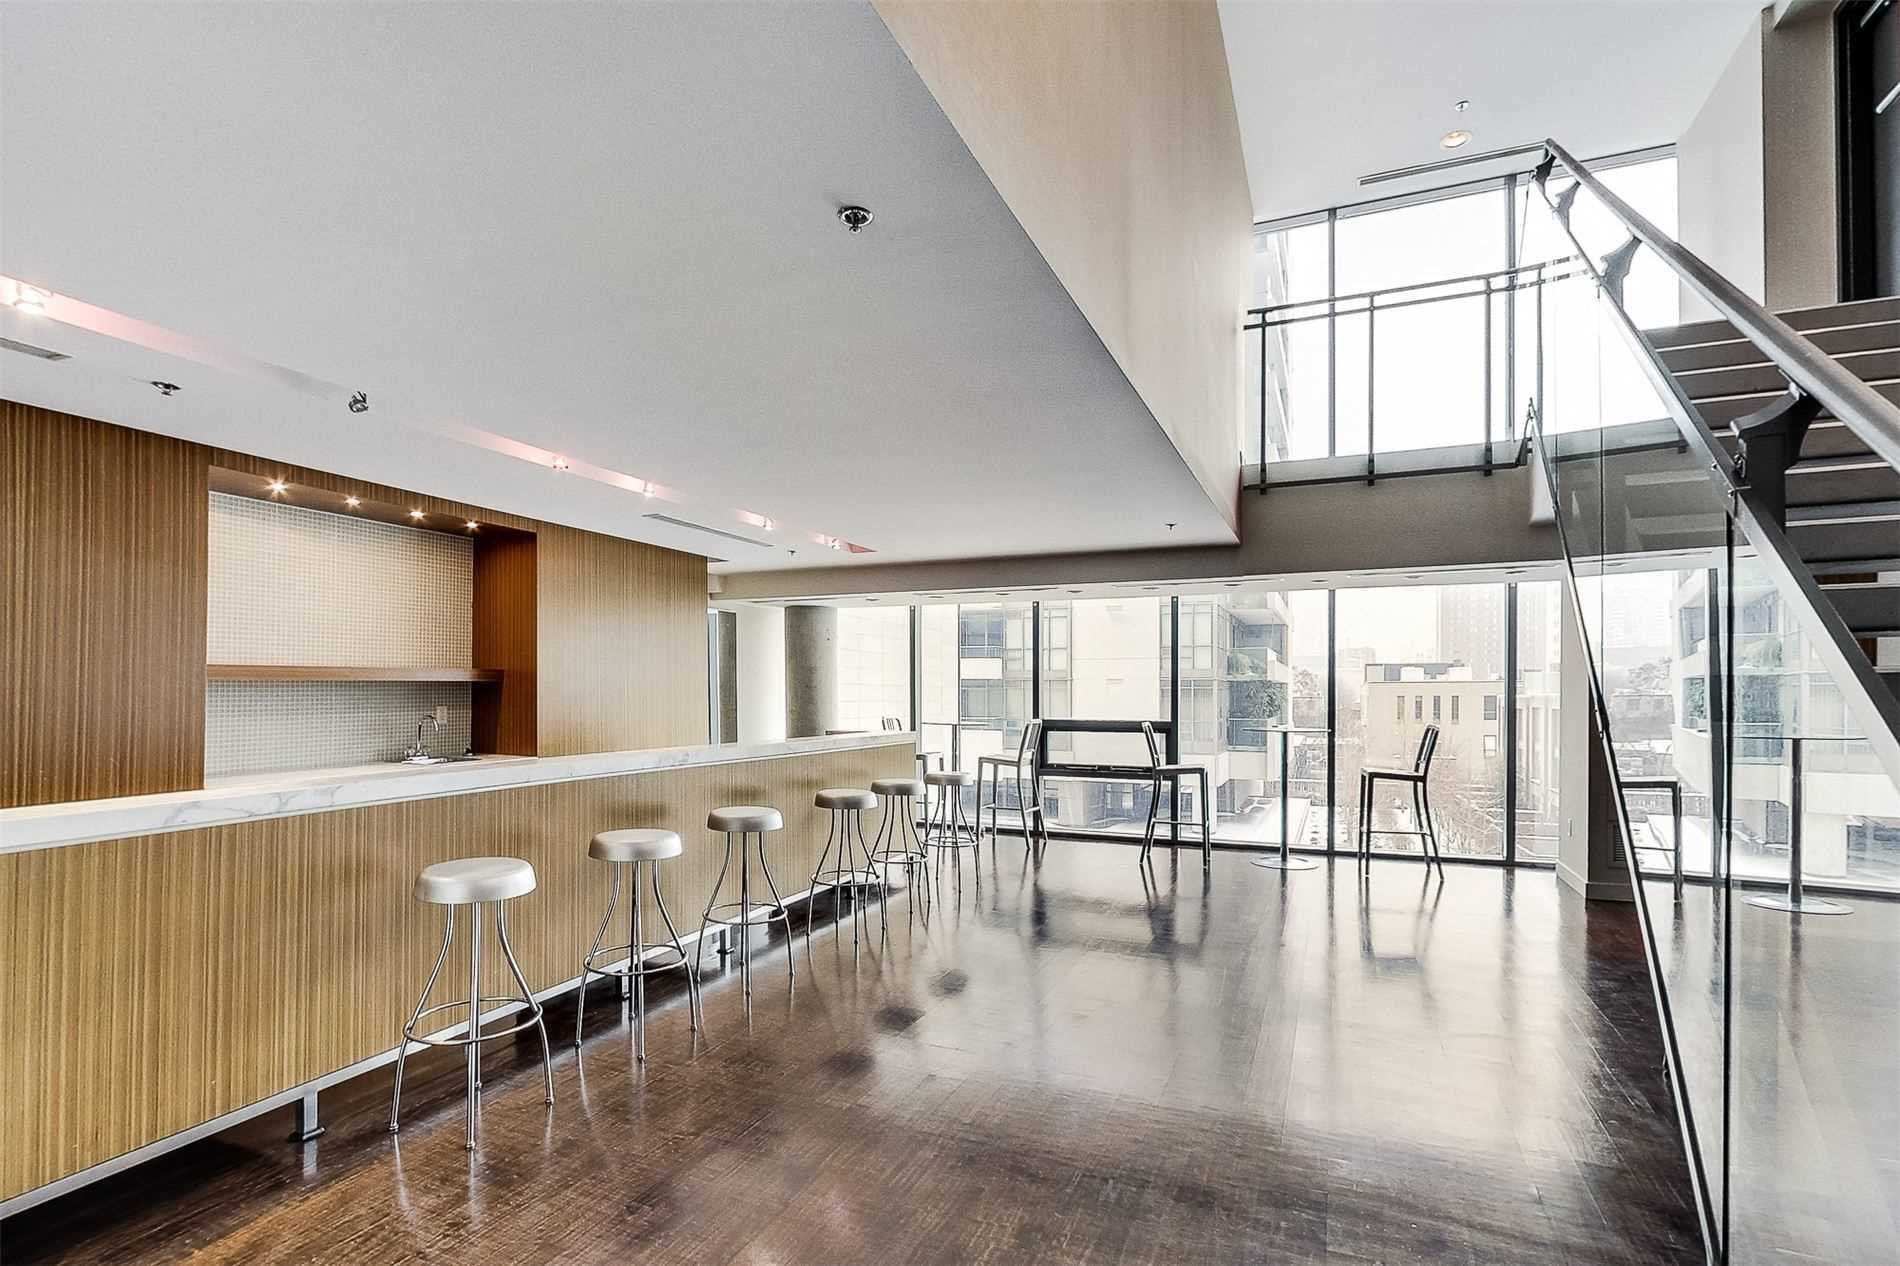 Photo 17: Photos: 1203 285 Mutual Street in Toronto: Church-Yonge Corridor Condo for sale (Toronto C08)  : MLS®# C4707981